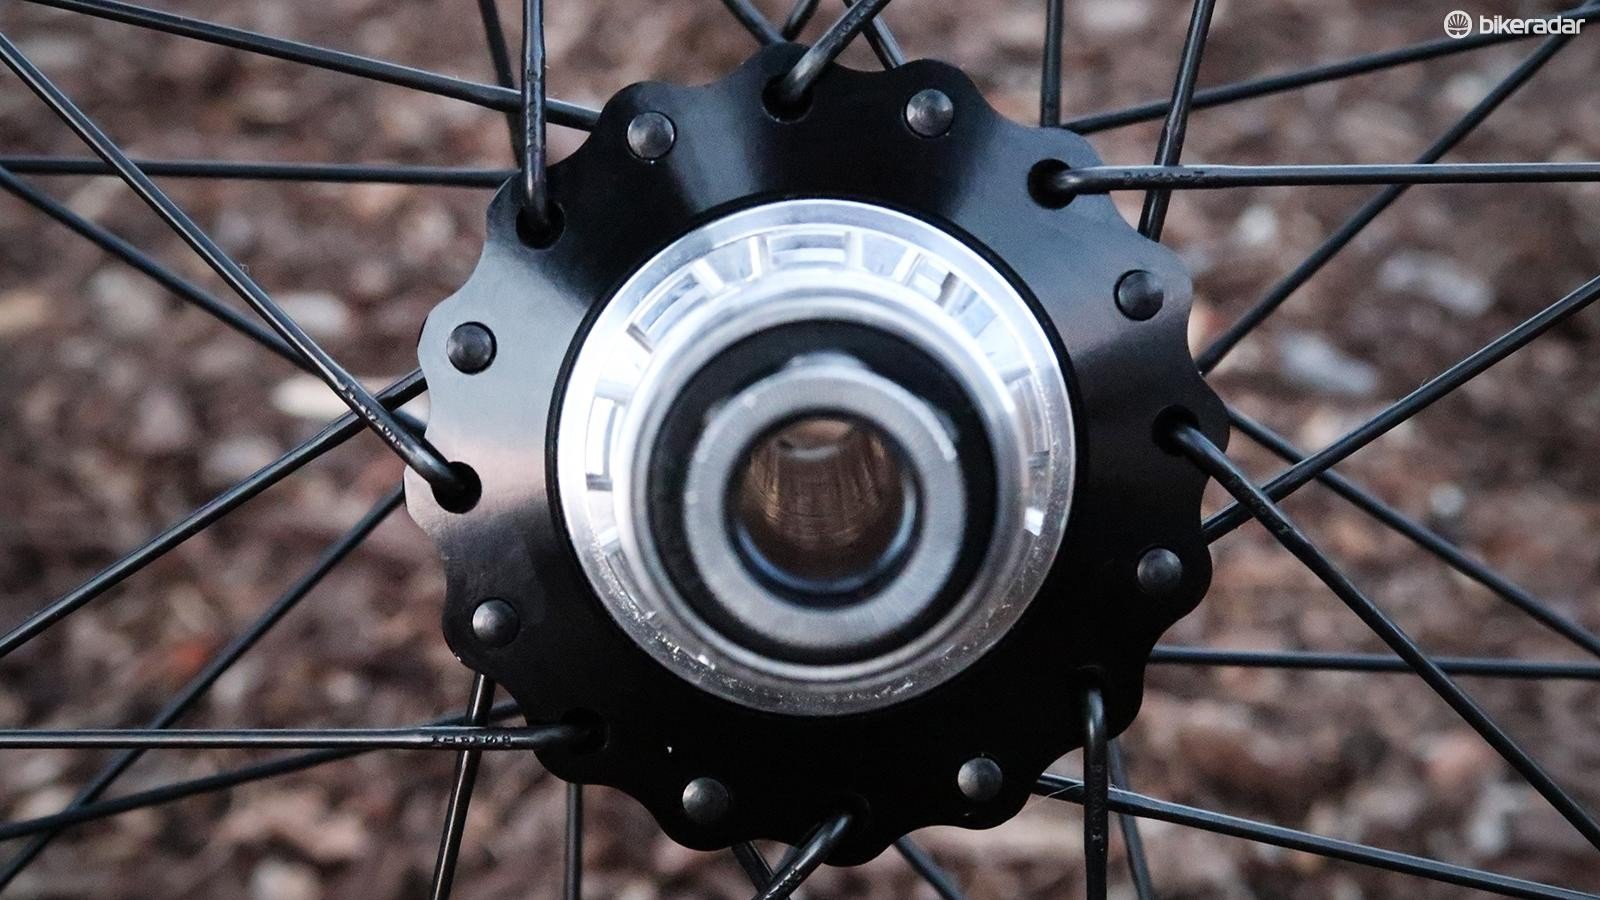 Onyx hubs use a sprag clutch system for instant engagement